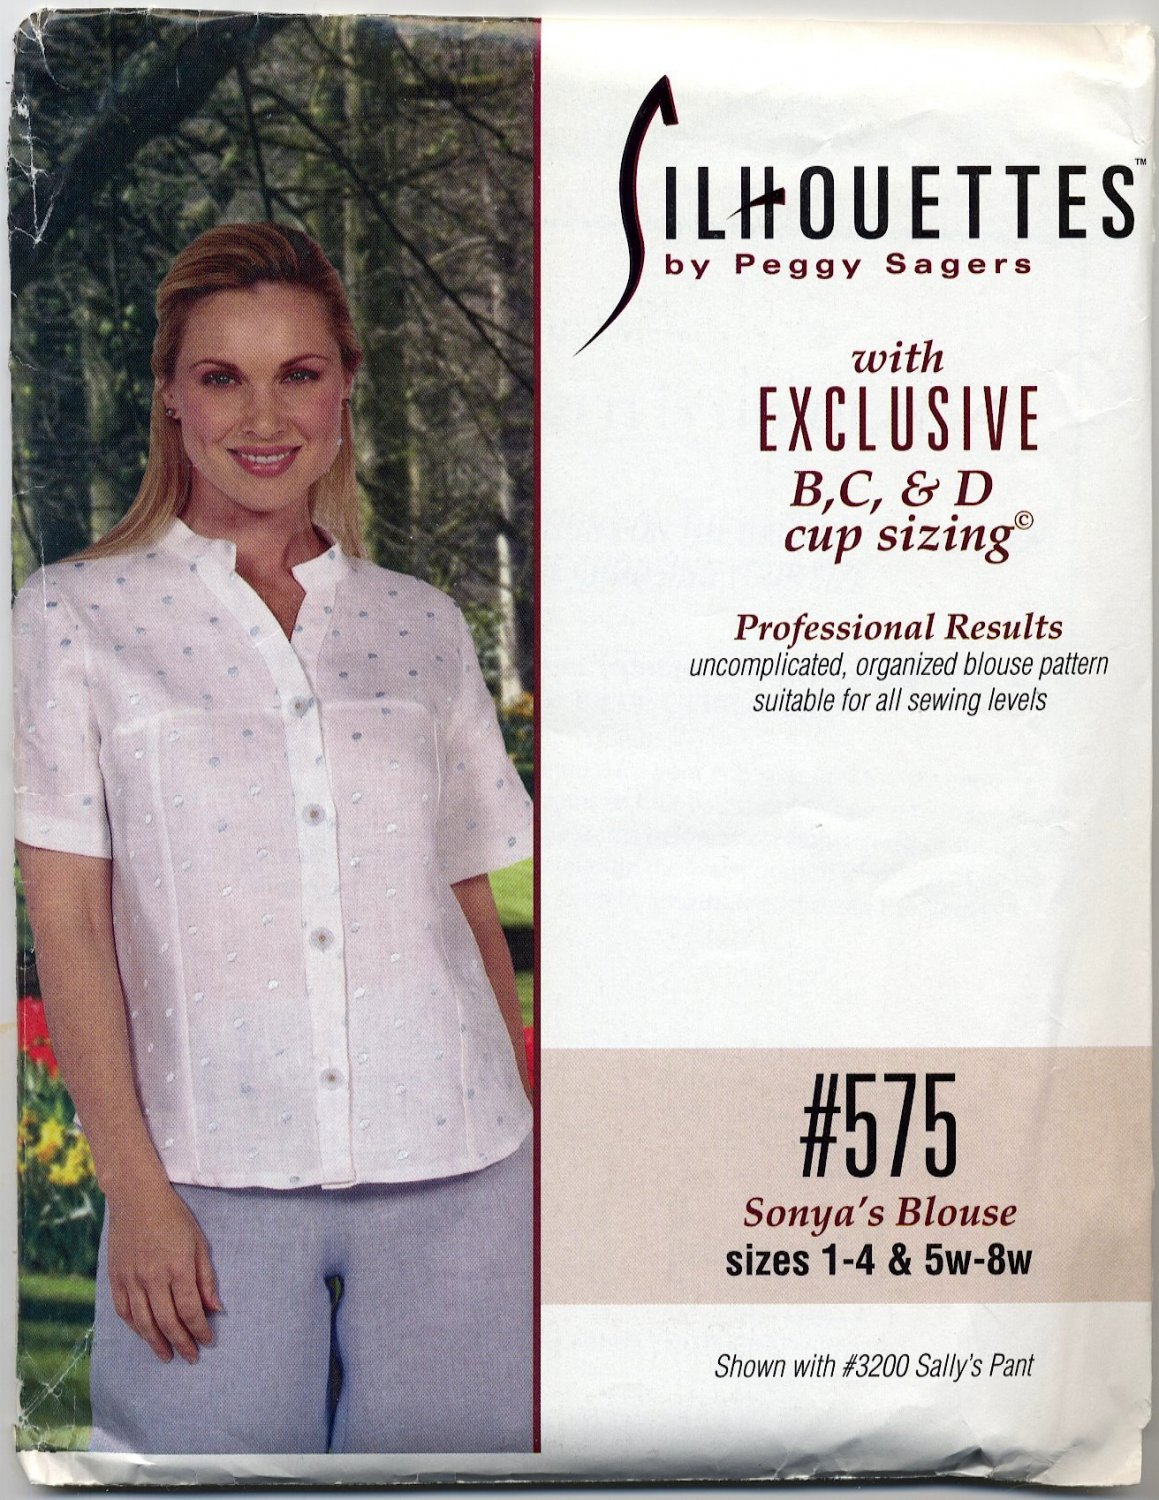 Silhouettes 575 - Sonya's Blouse / B C D-Cup Sizing - Sewing Pattern - Misses' 1-4 & Women's 5w-8w